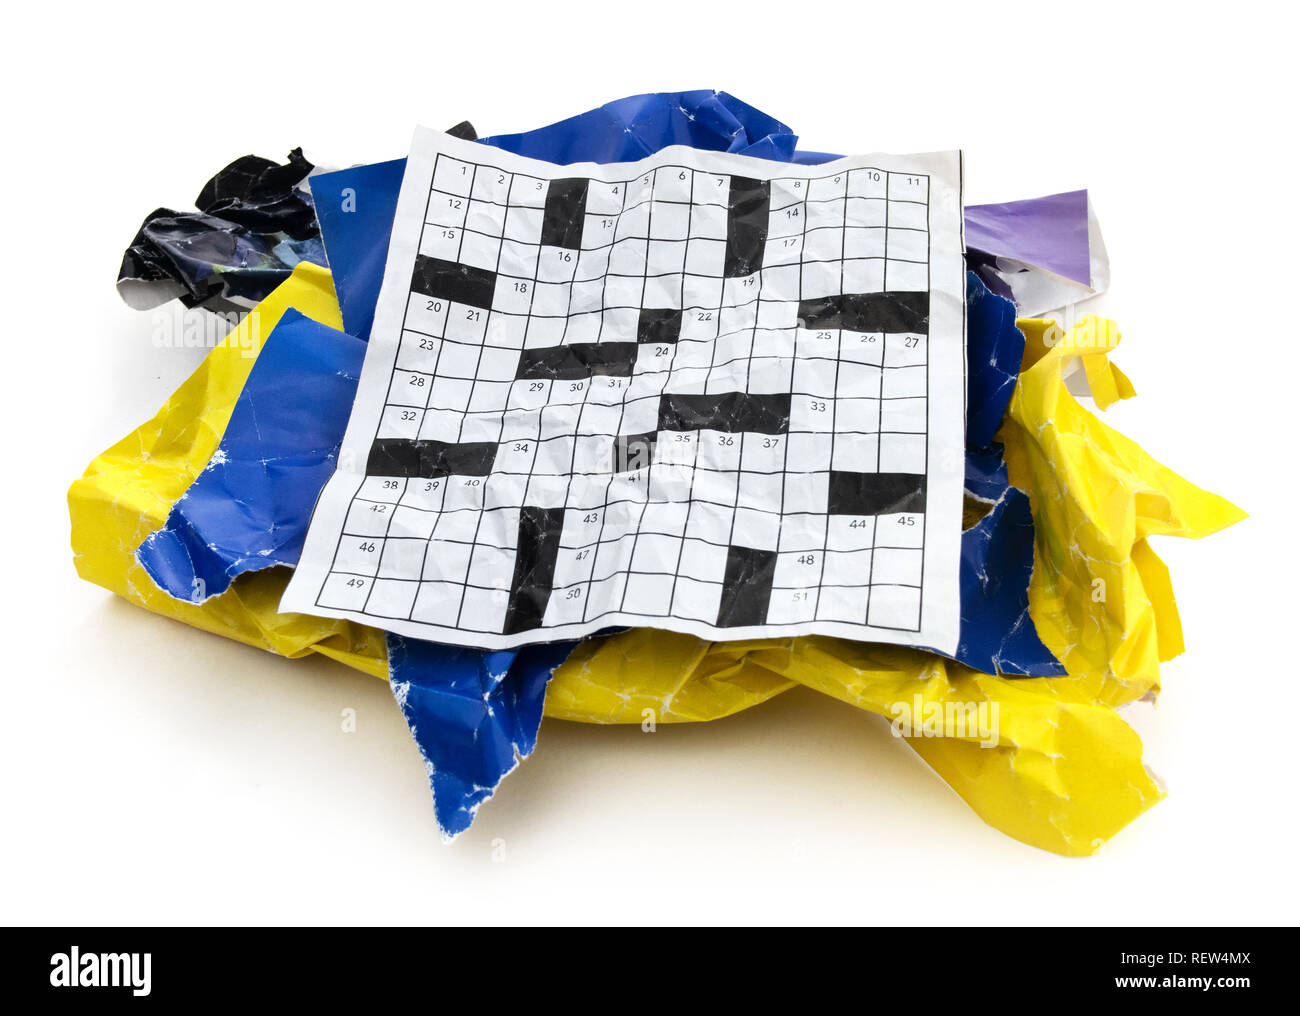 Isolated Crumpled torn ripped crossword puzzle paper cut out. Frustrated old wrinkled crumpled crossword puzzle paper on a white background. - Stock Image